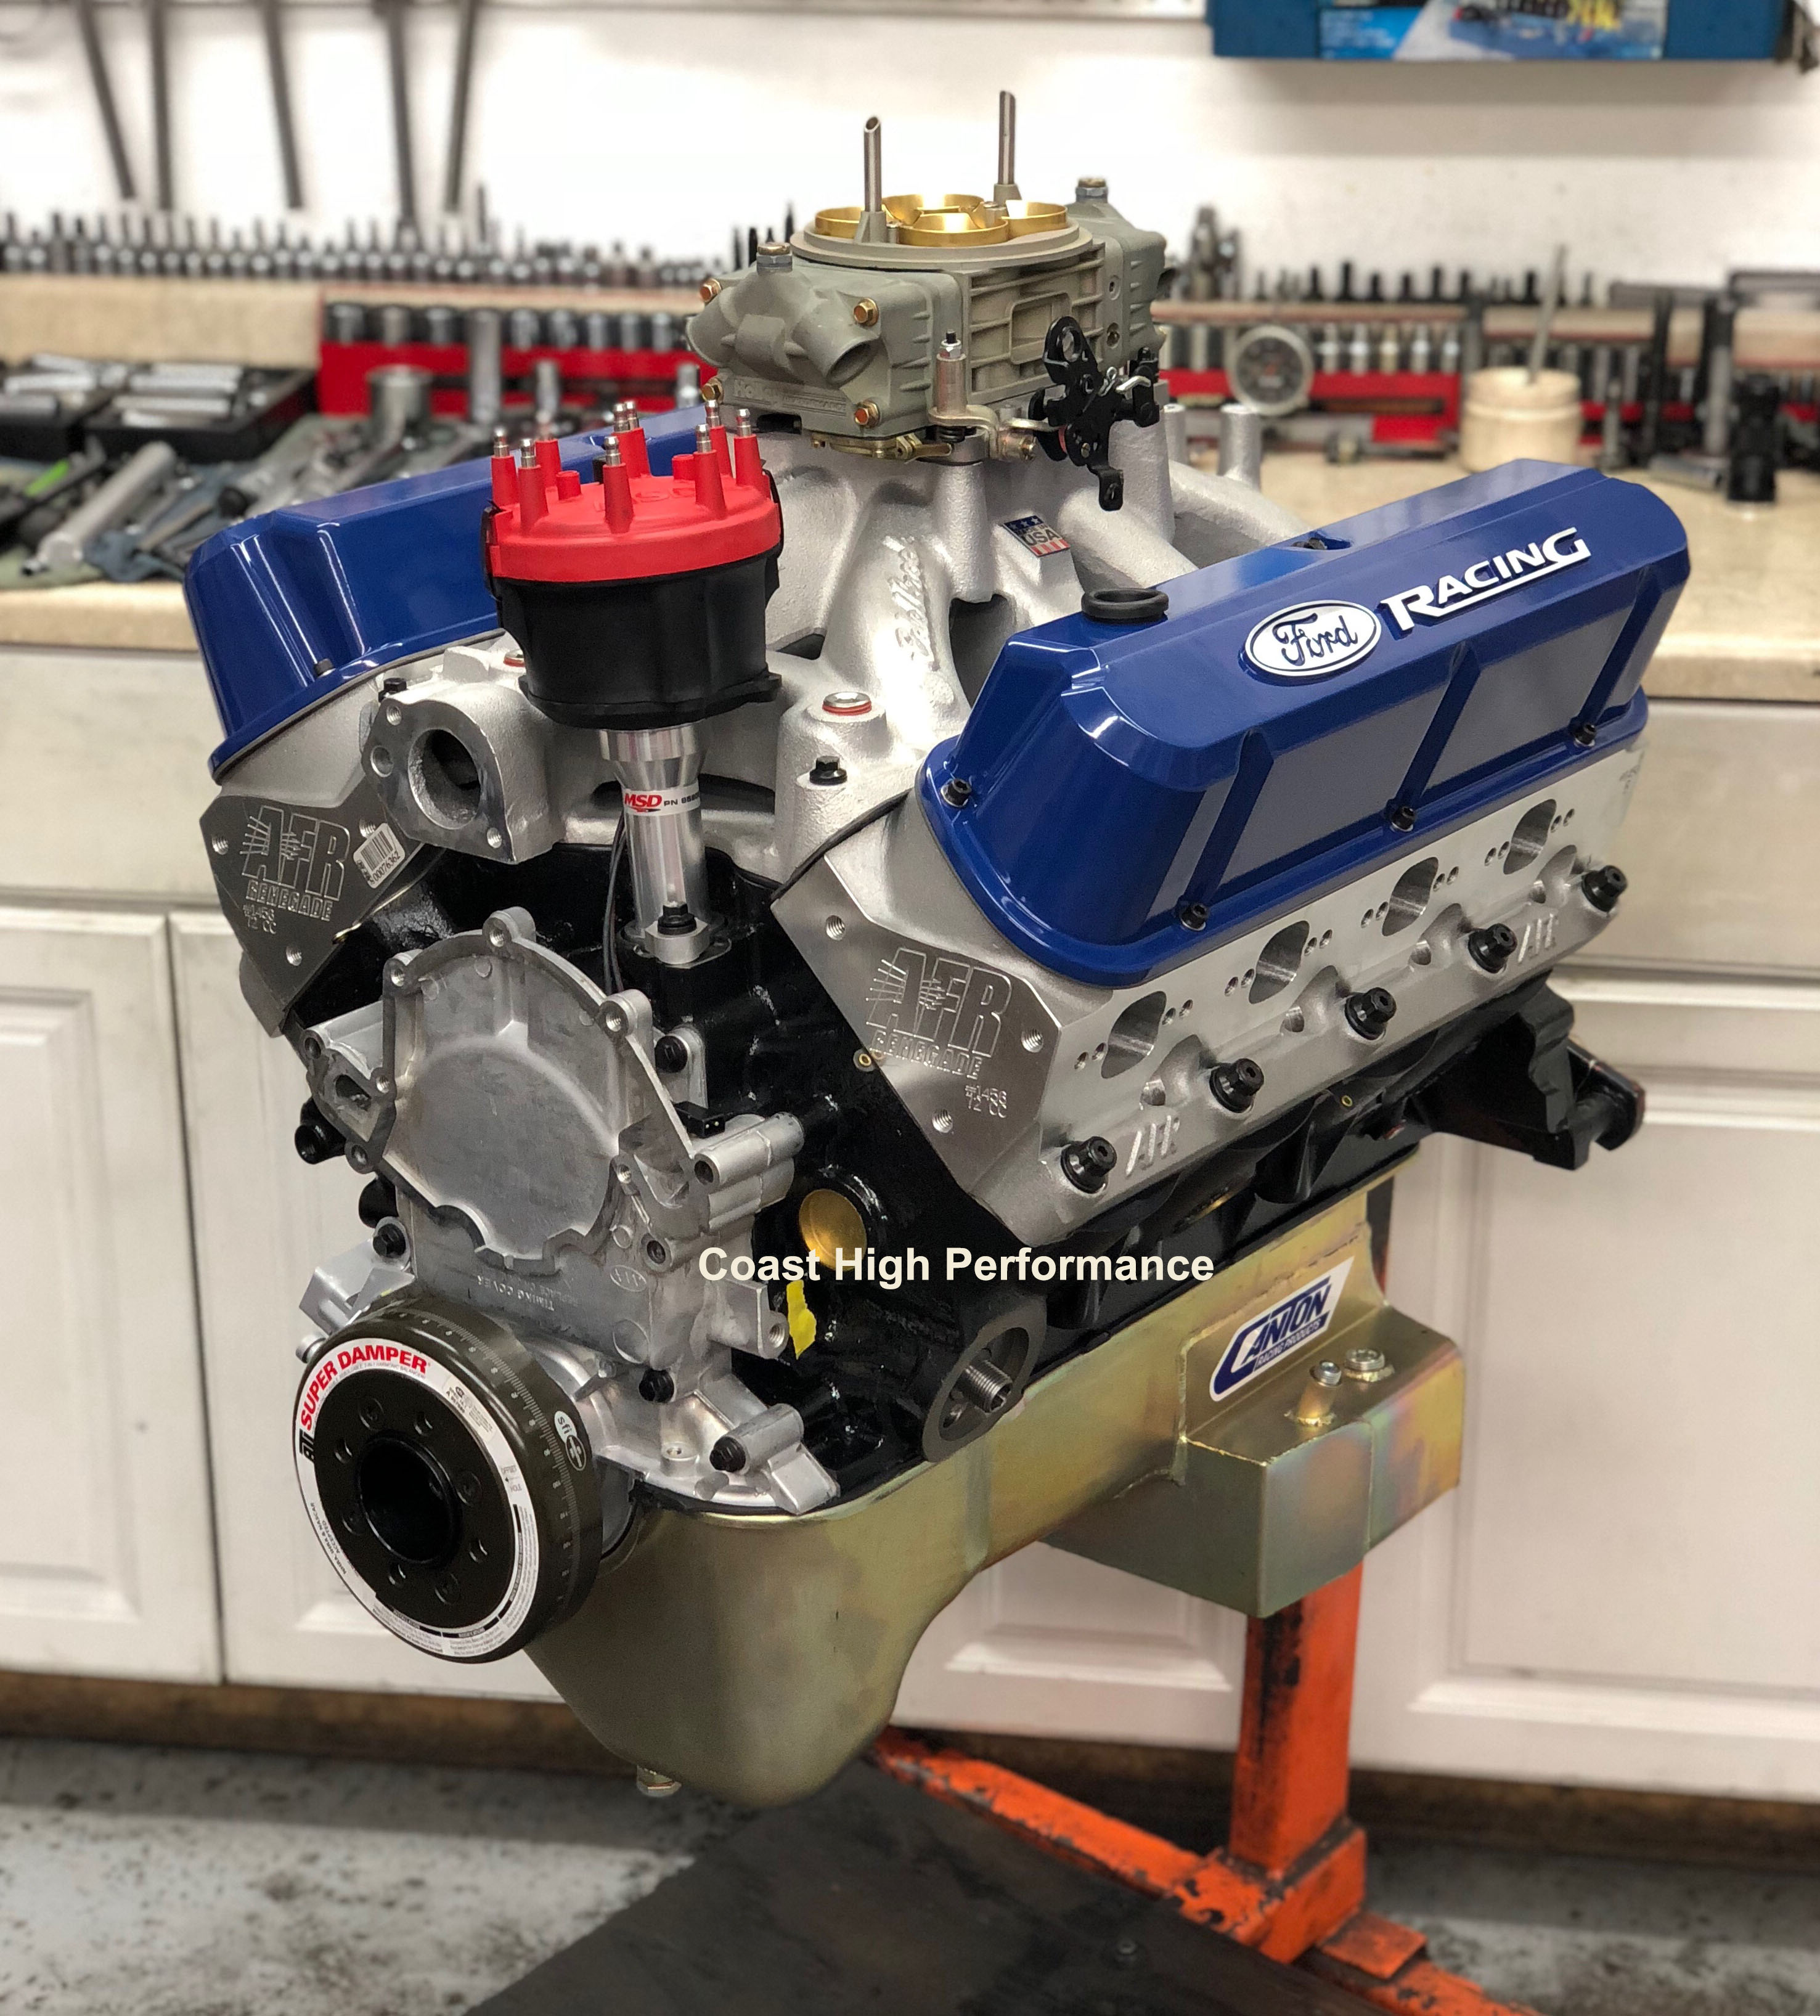 High performance horsepower crate engines long blocks short high performance horsepower crate engines long blocks short blocks pistons engine kits for hot rods and racers coast high performance malvernweather Images